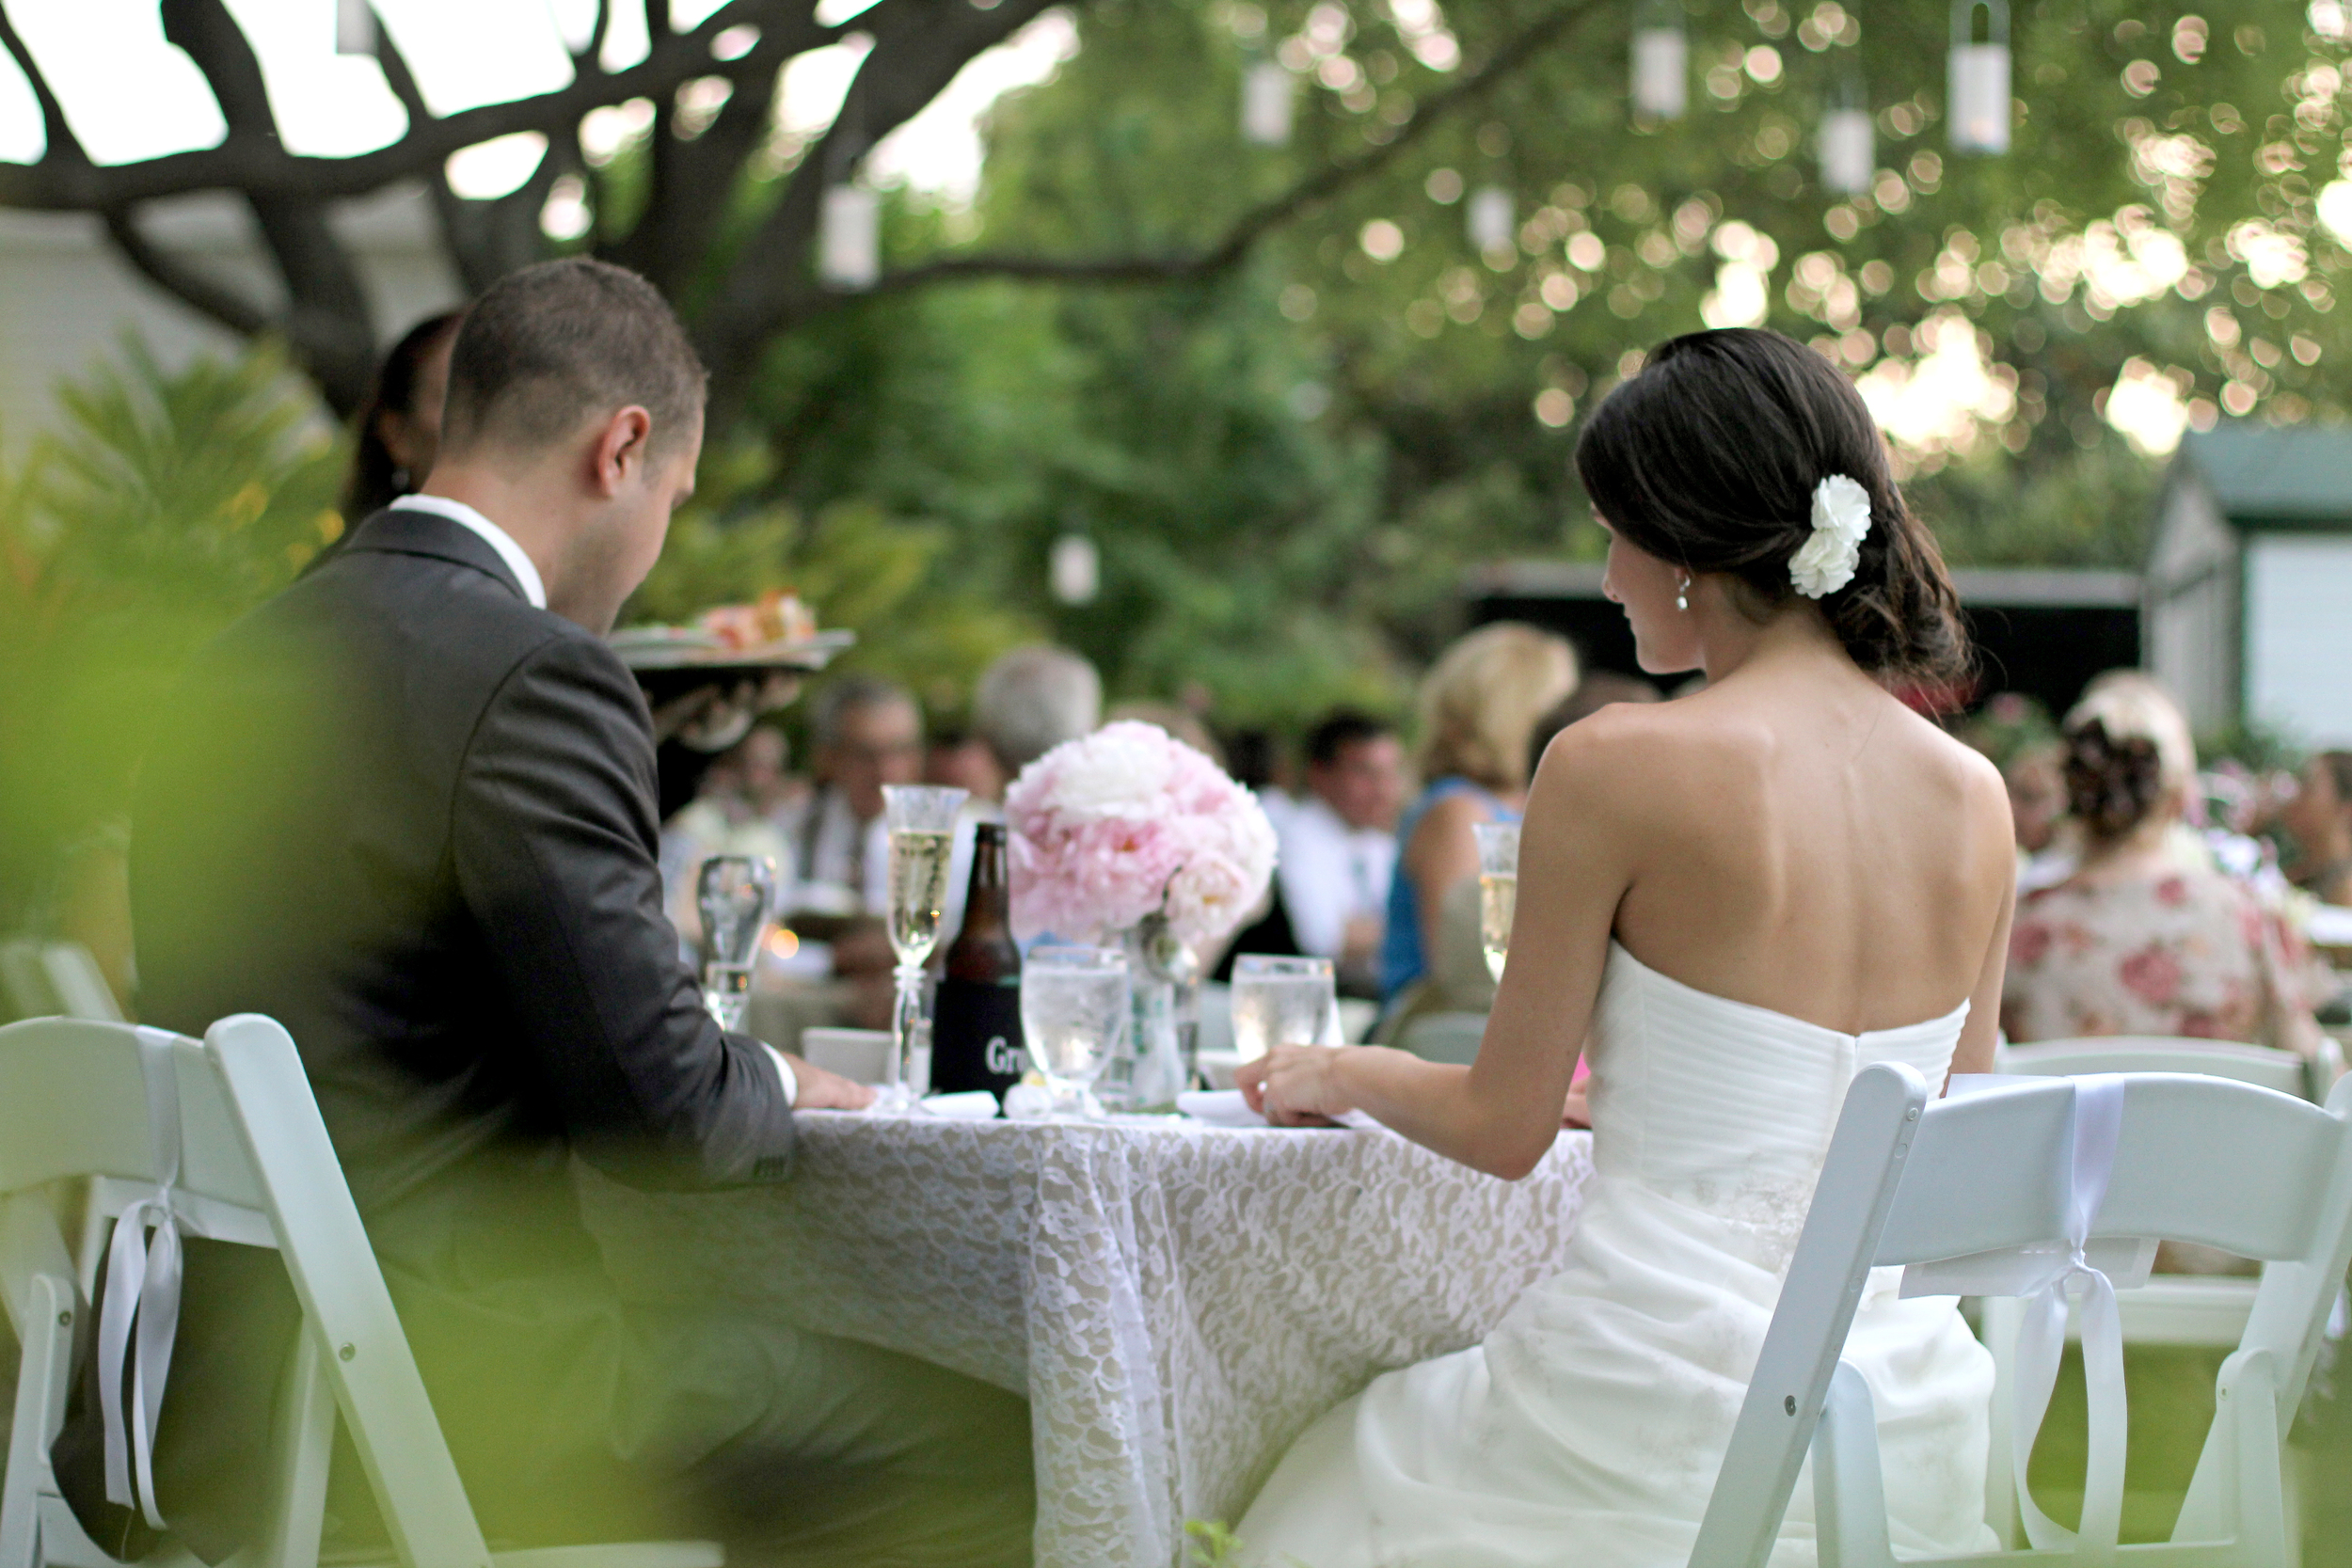 The al fresco reception was set under a canopy of oak trees with suspended lanterns in the branches